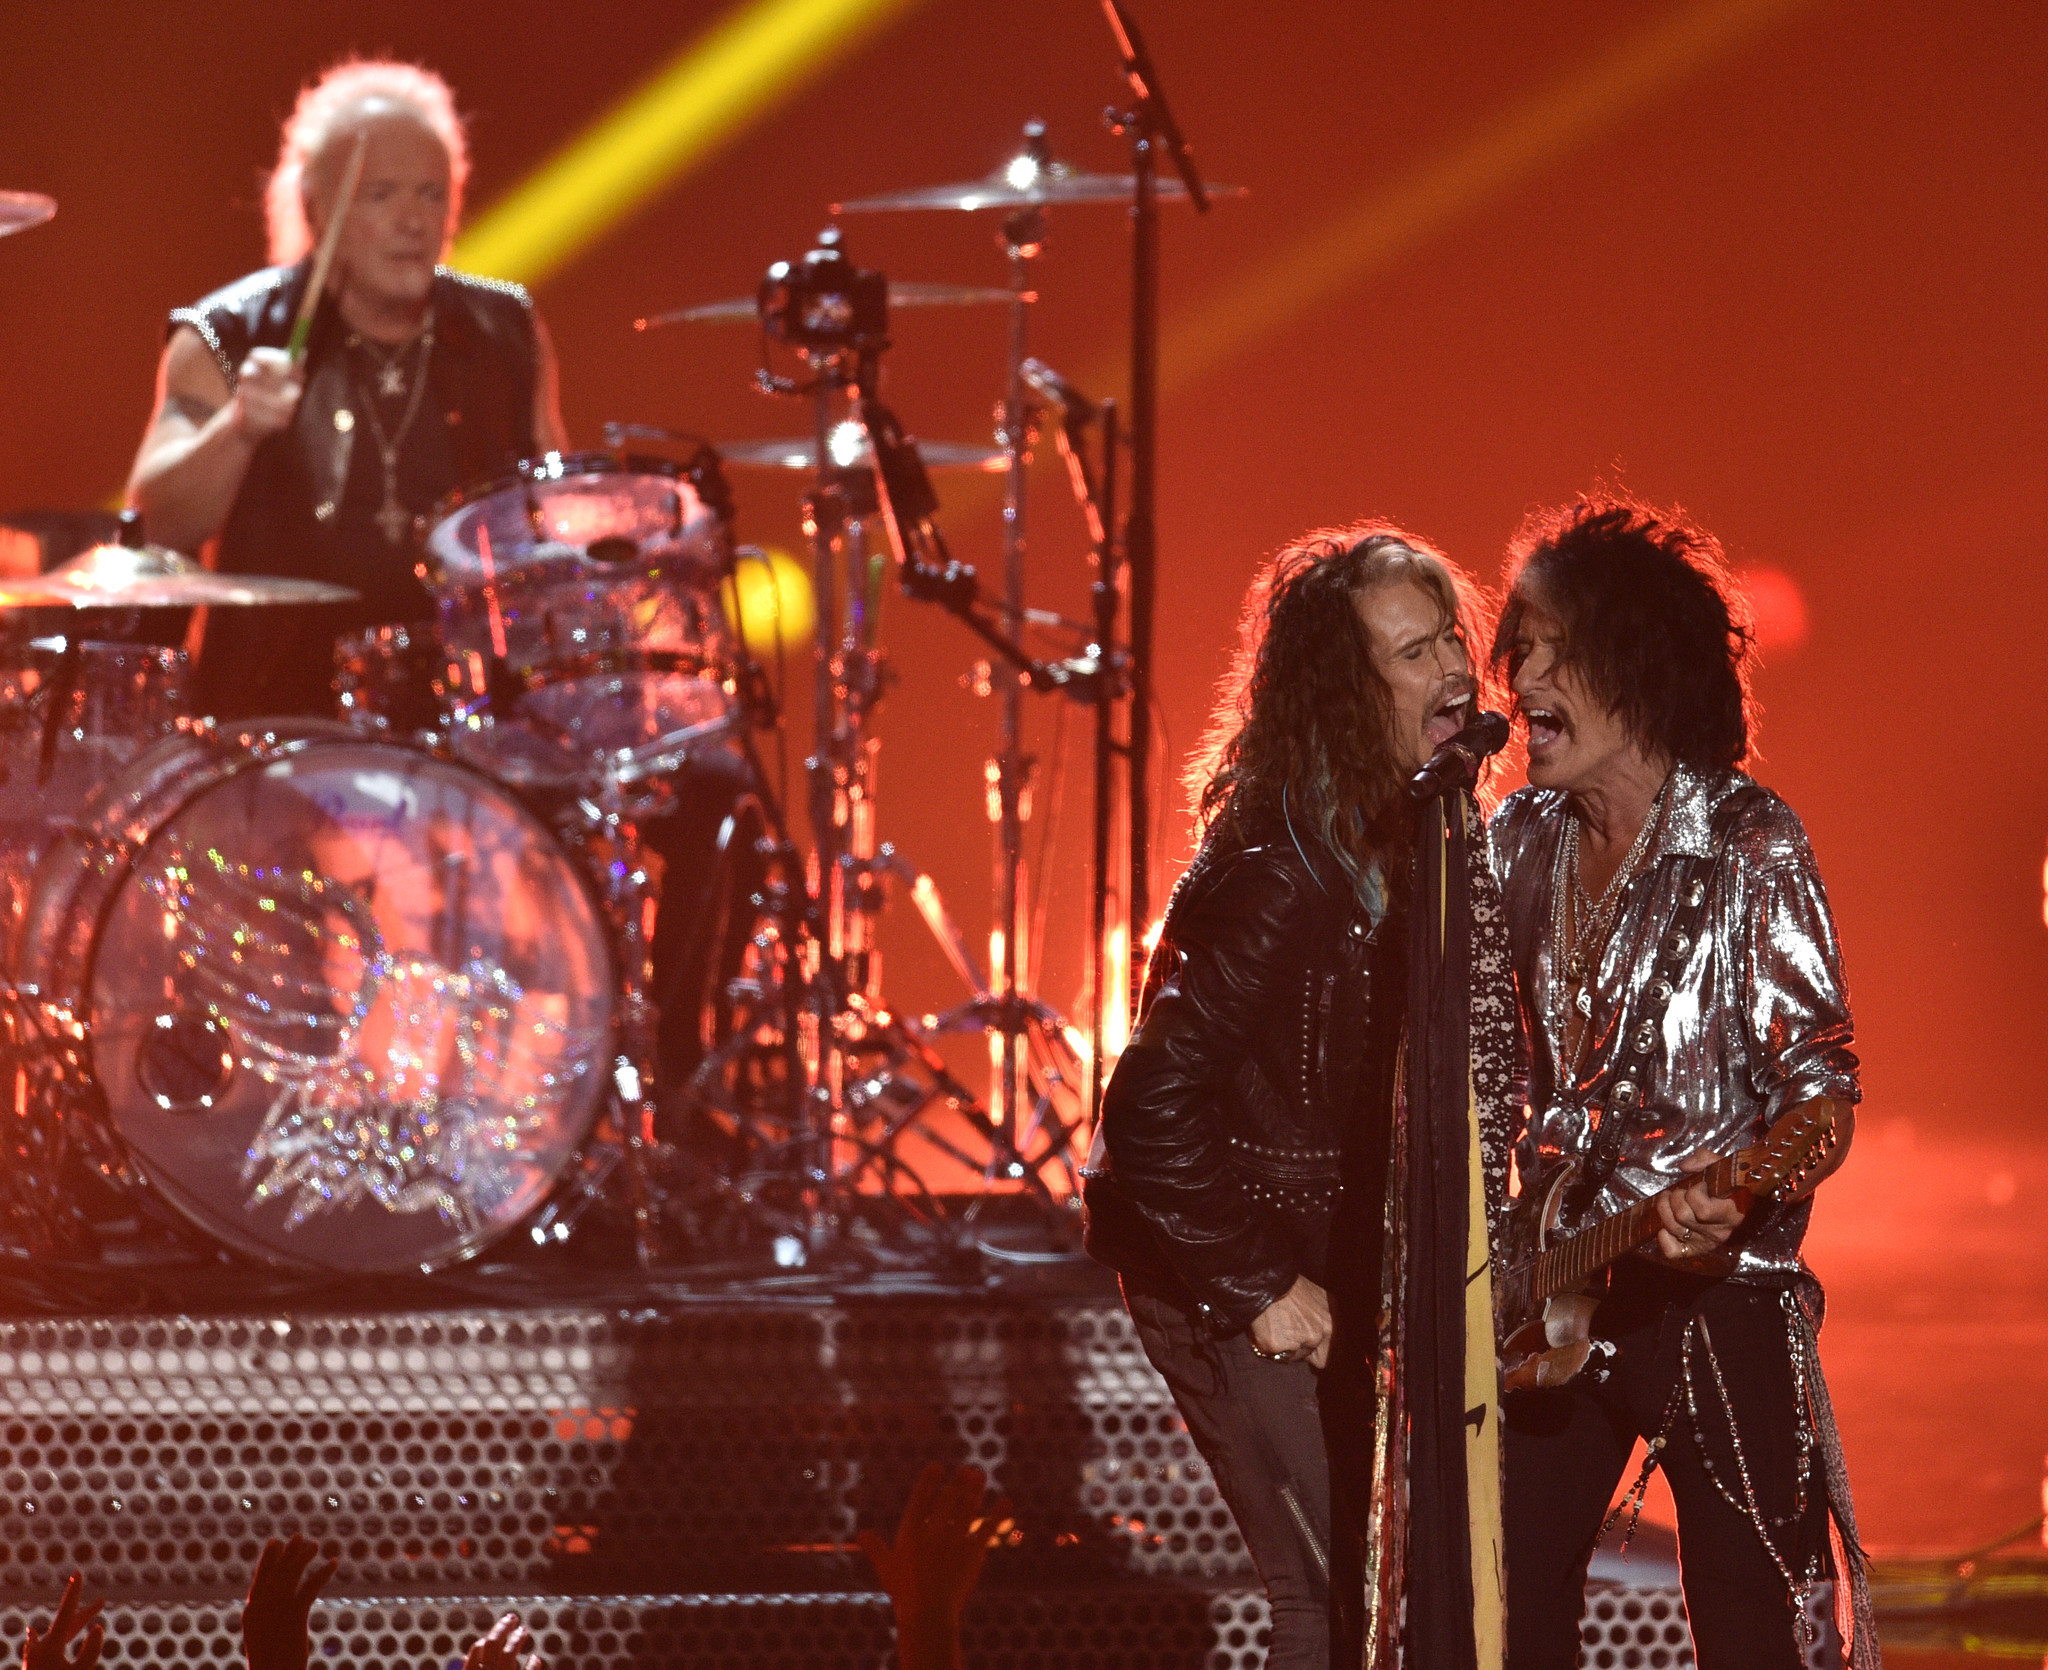 Aerosmith drummer Joey Kramer loses battle to play Grammys with iconic band, judge rules